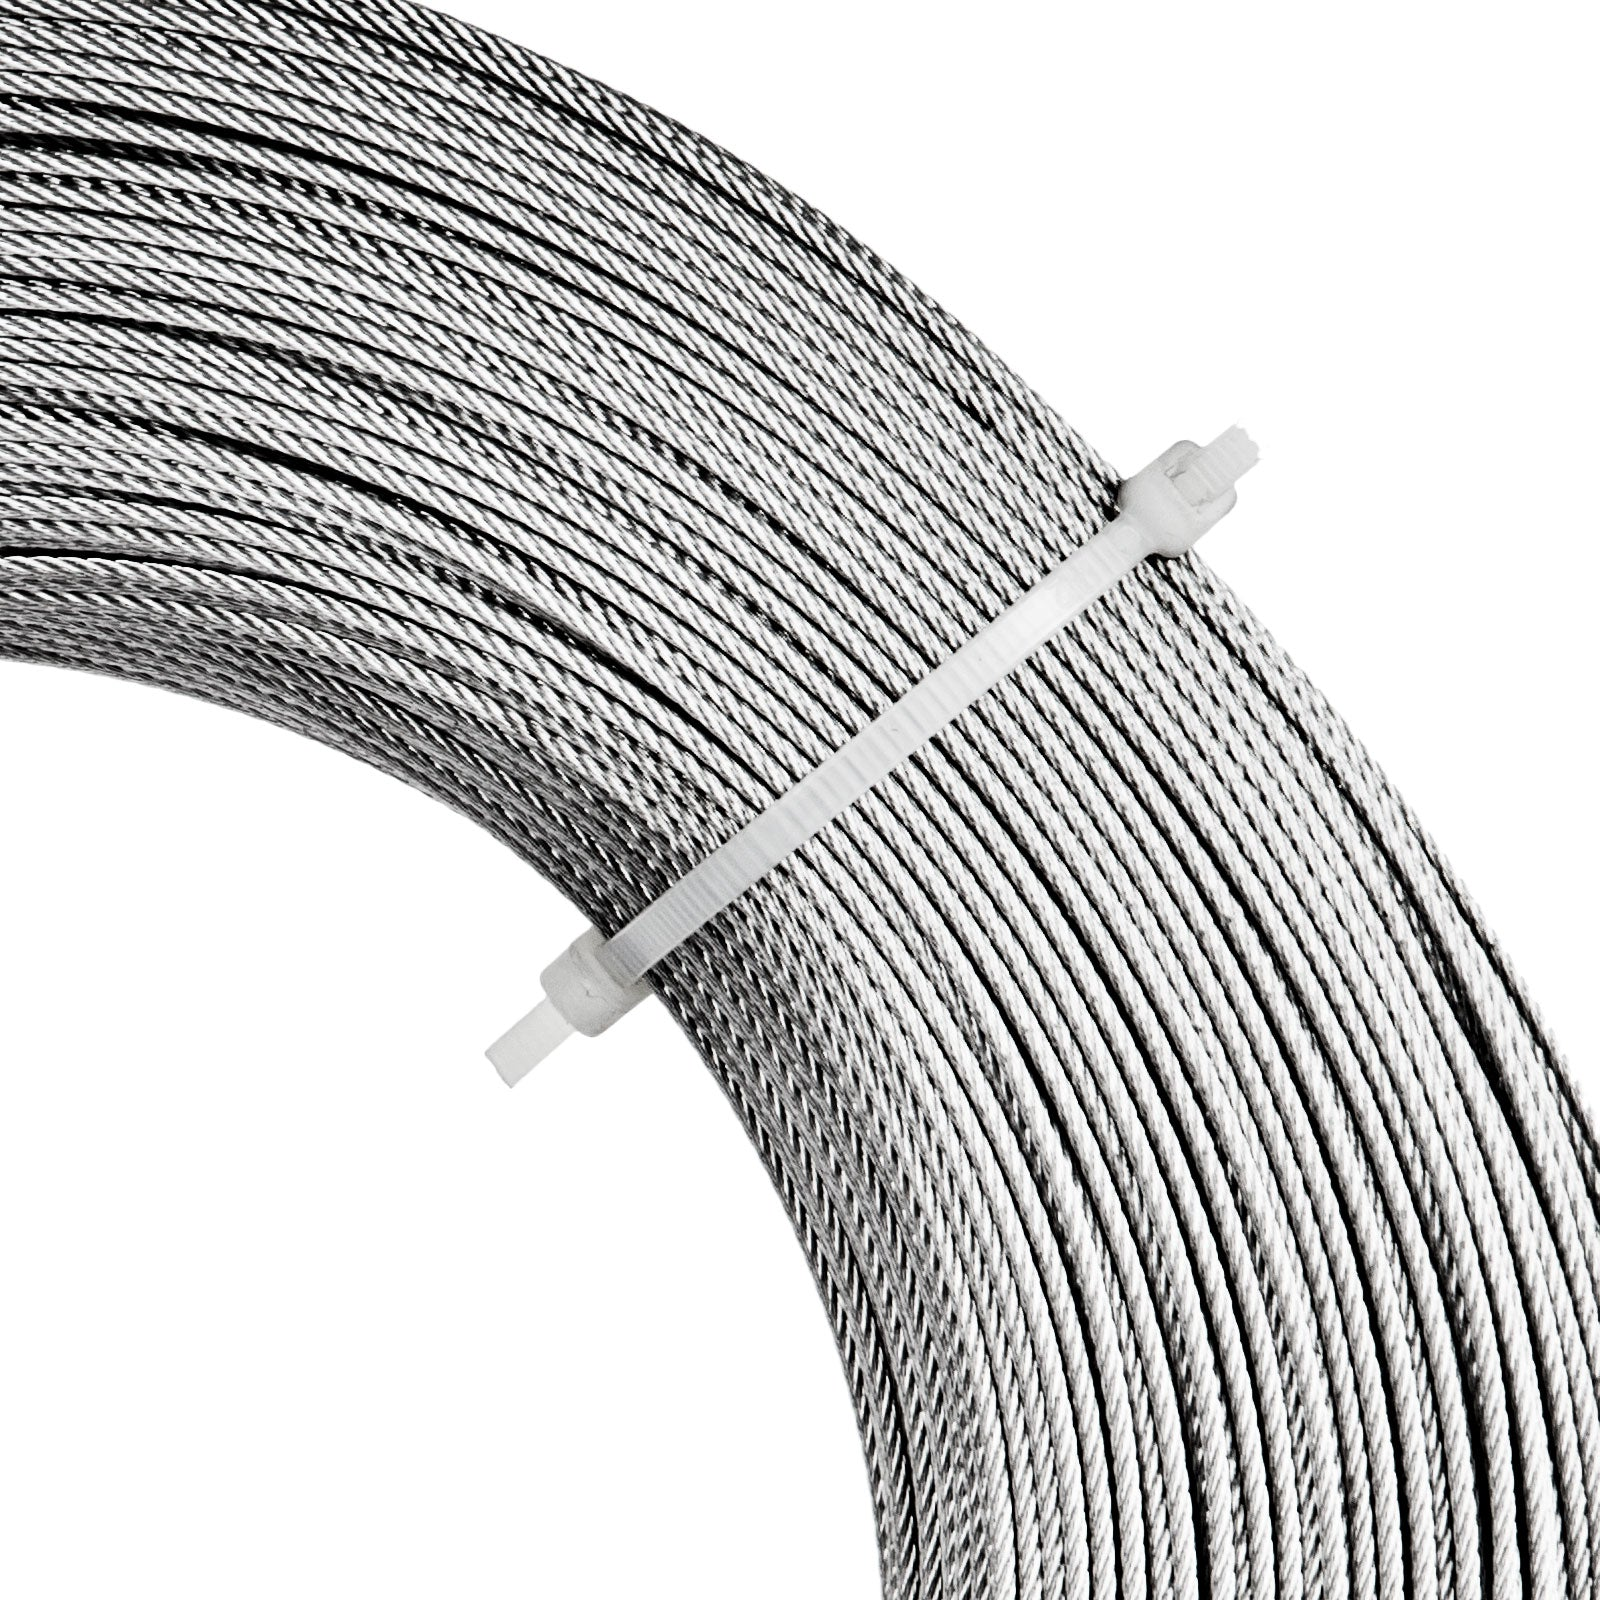 "1,000ft Stainless Steel Type 316 Wire Rope 7x7 - 1/16"" - Cable"